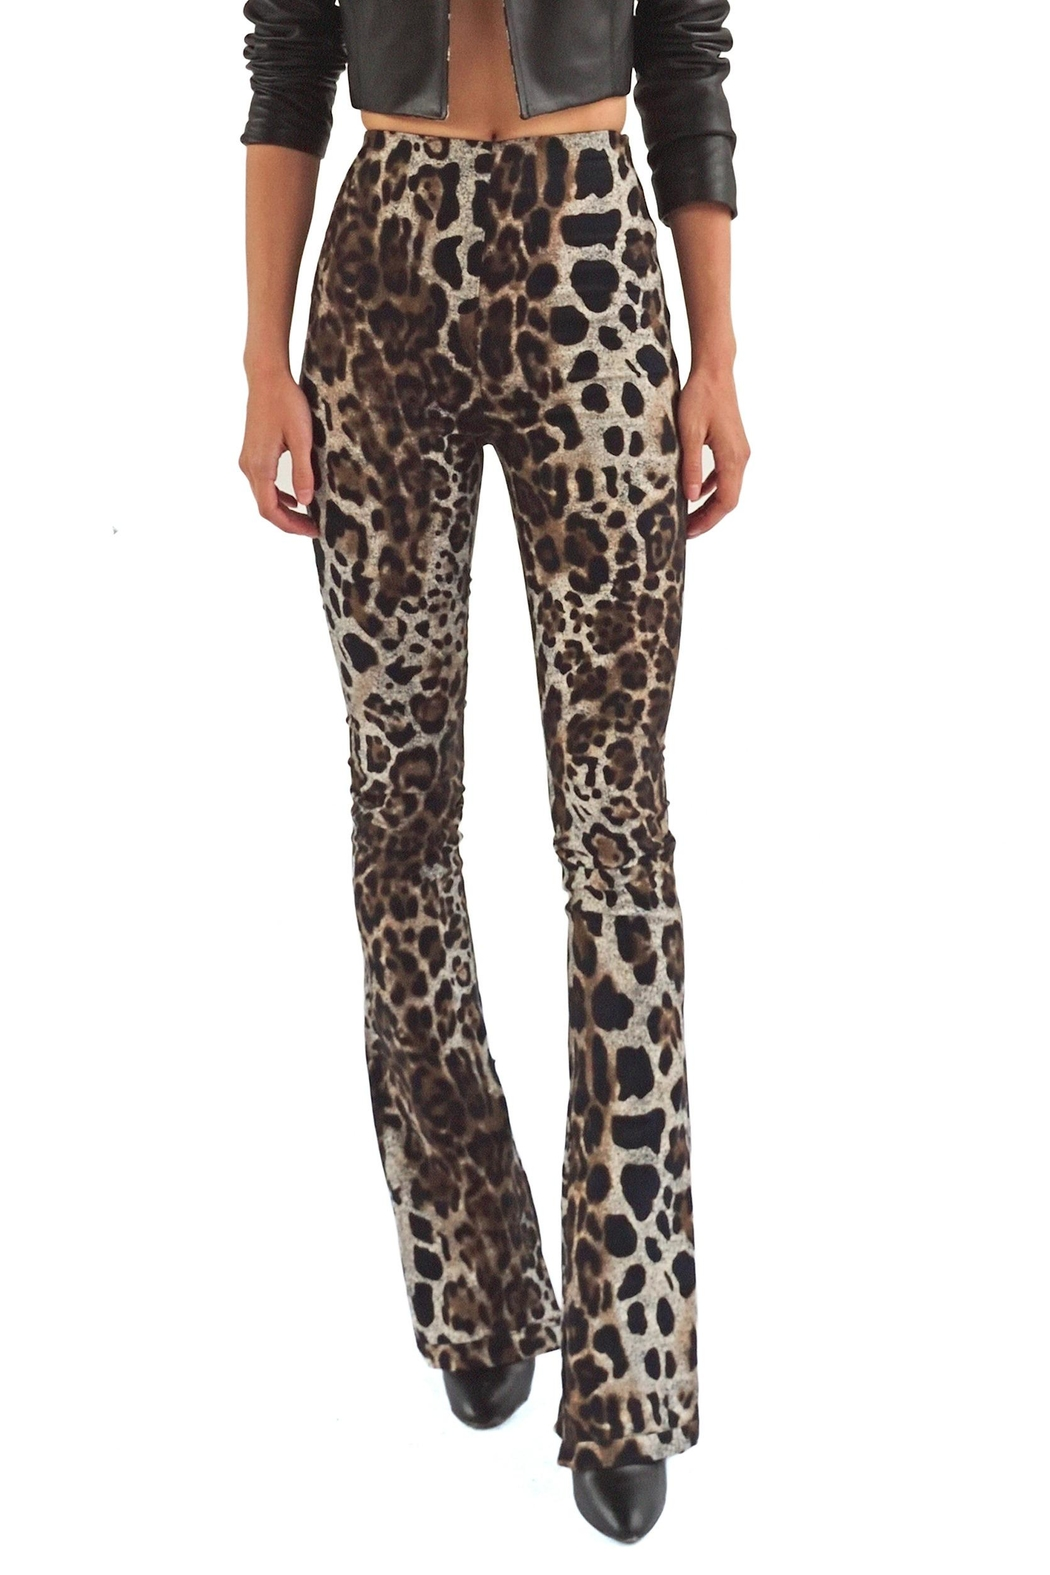 Viesca y Viesca Animal Print Pants - Front Cropped Image